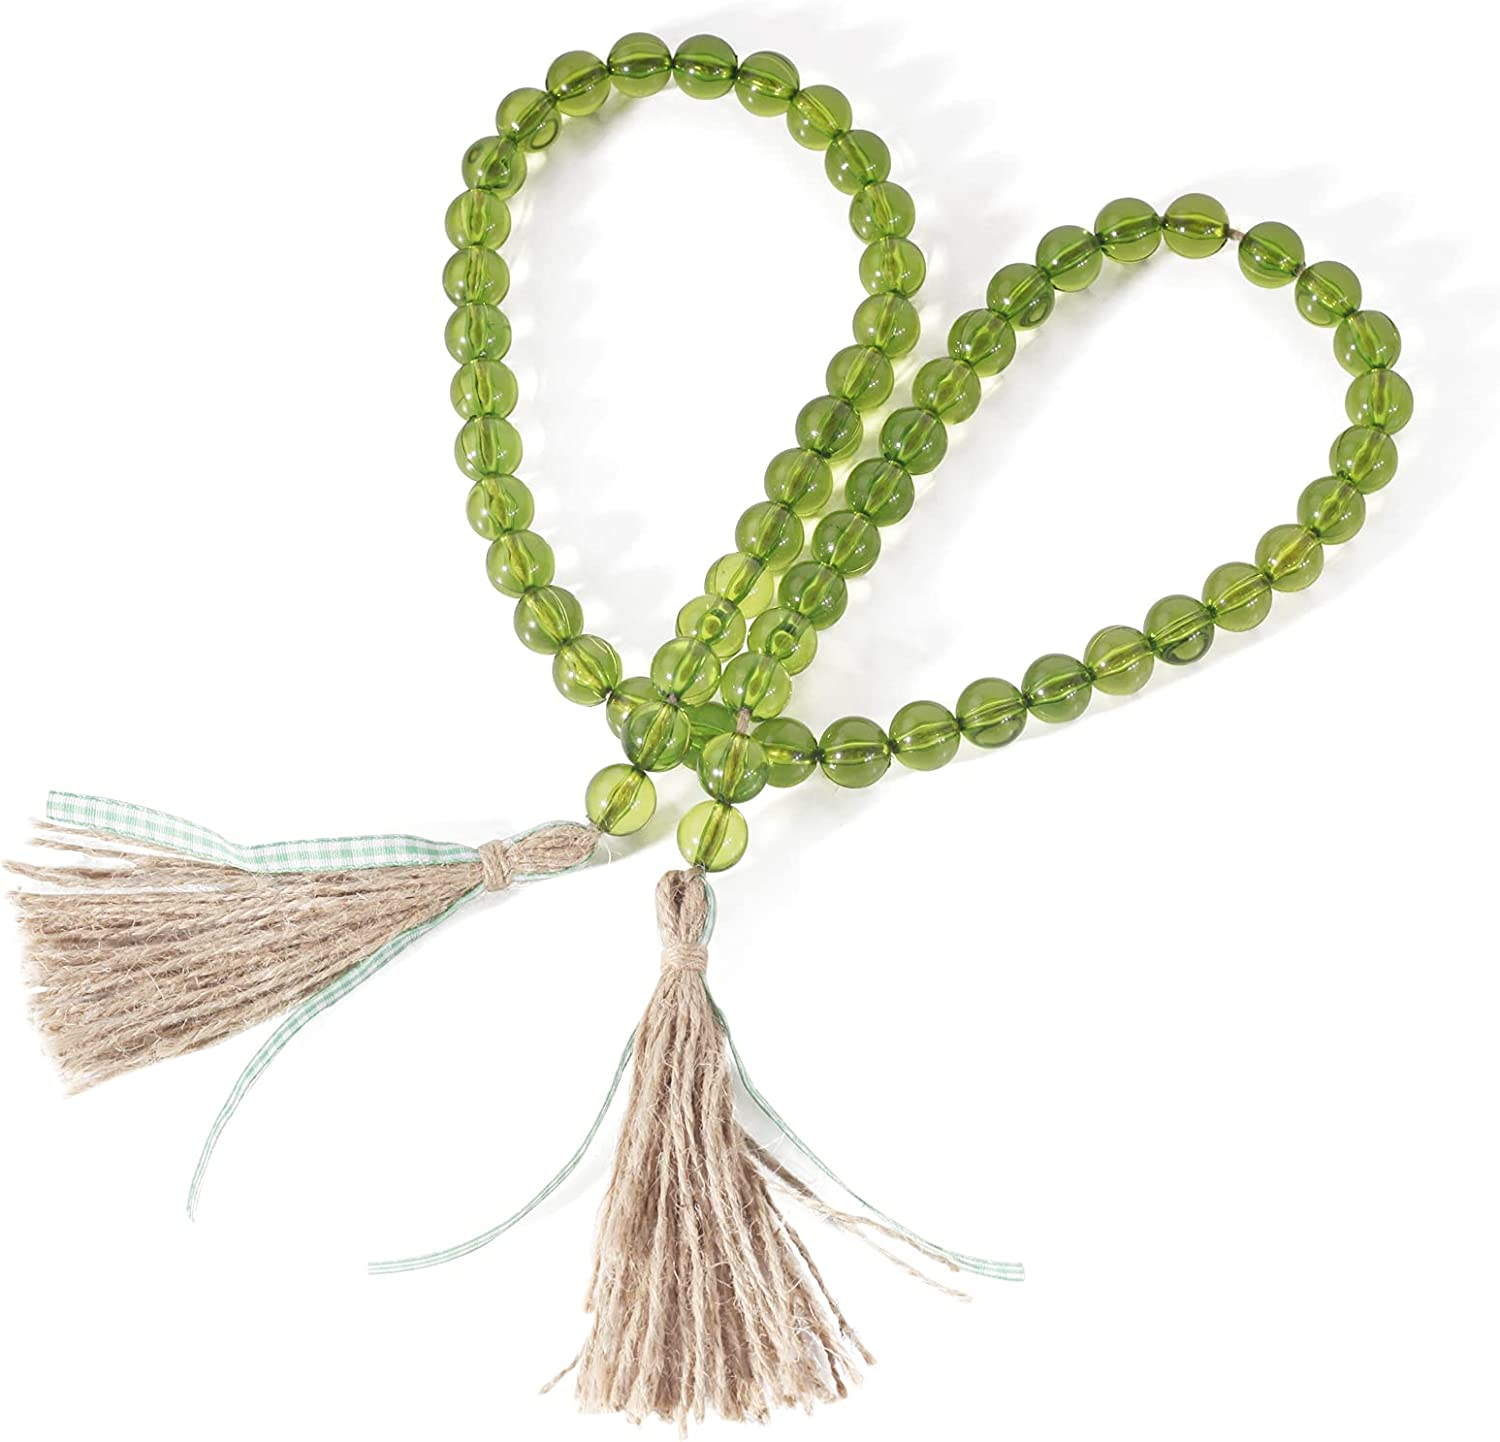 Panba Farmhouse Beads with Tassel Bead Garland Boho Wall Decor for Party Garland and Rustic Home, Tier Tray Coffee Table Decor Beads Handmade Easter Decoration Christmas Ornament (Green)